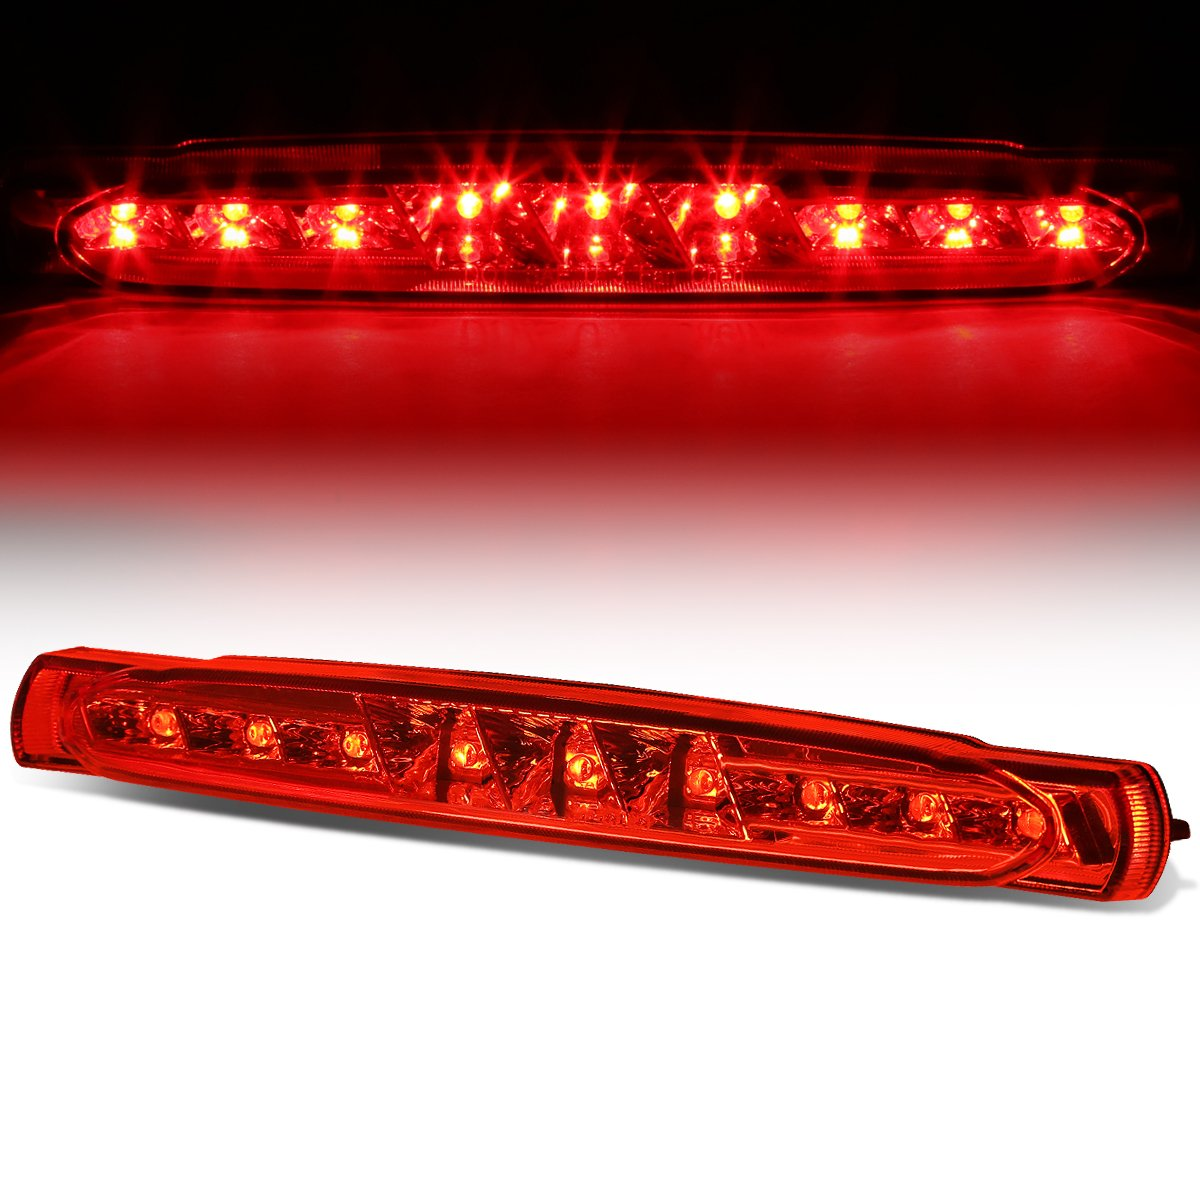 For Chevy Corvette C5 Rear High Mount LED 3rd Brake Light (Red Lens) Auto Dynasty